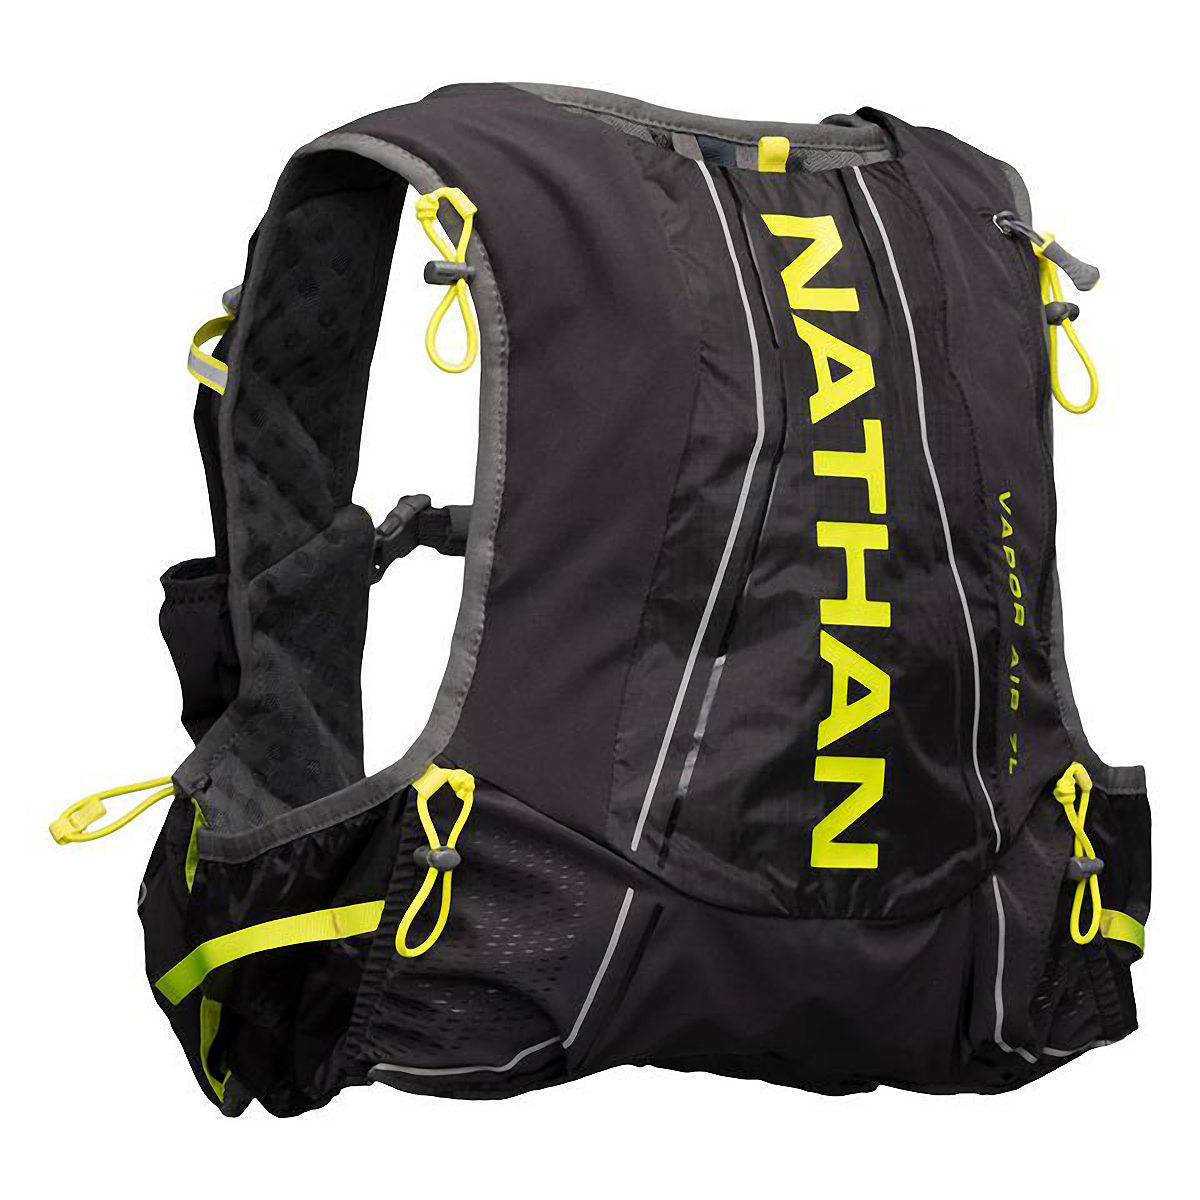 Nathan Vaporair 2.0 7 Liter Hydration Pack - Color: Black Charcoal/Nuclear Yellow - Size: XS-M, Black Charcoal/Nuclear Yellow, large, image 1